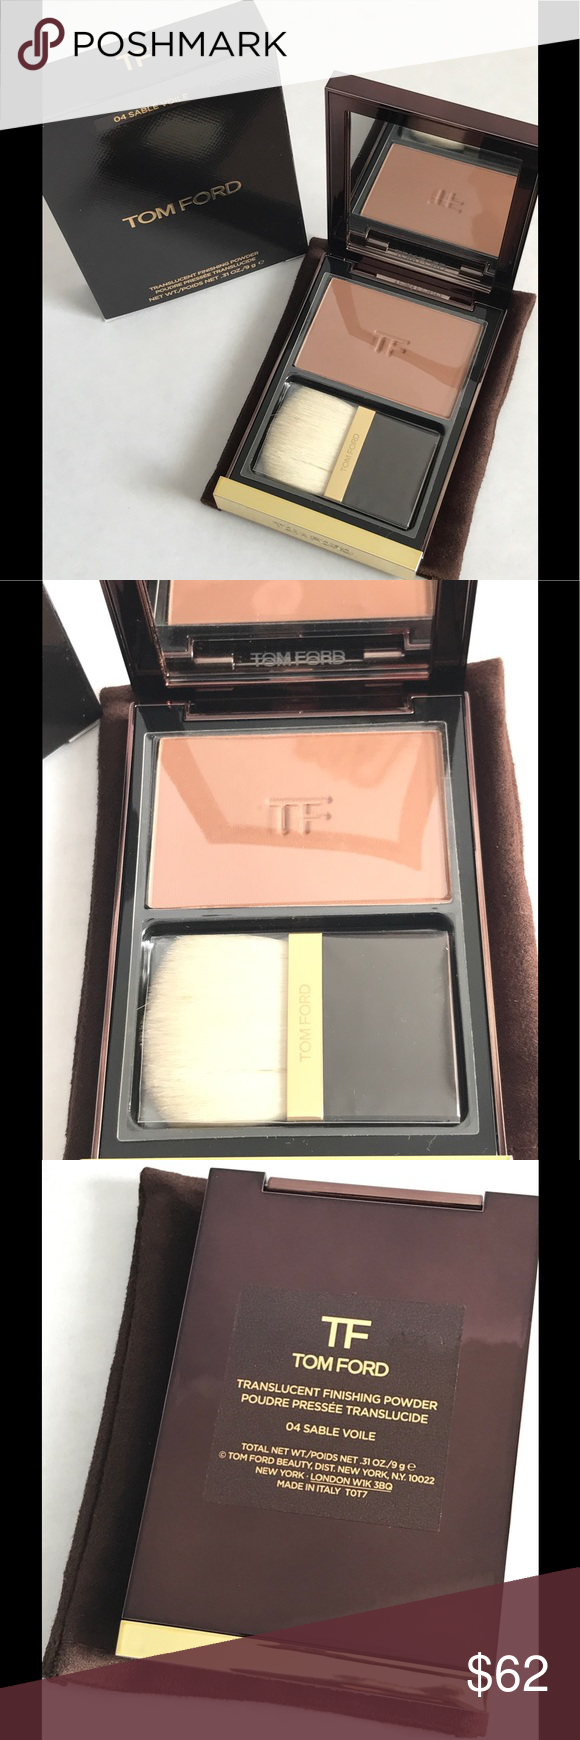 c5adce20ca007 Tom Ford Translucent Finishing Powder Sable Voile Authentic Tom Ford  Translucent Finishing Powder Sable Voile 04. Brand new in box Tom Ford  Makeup Face ...